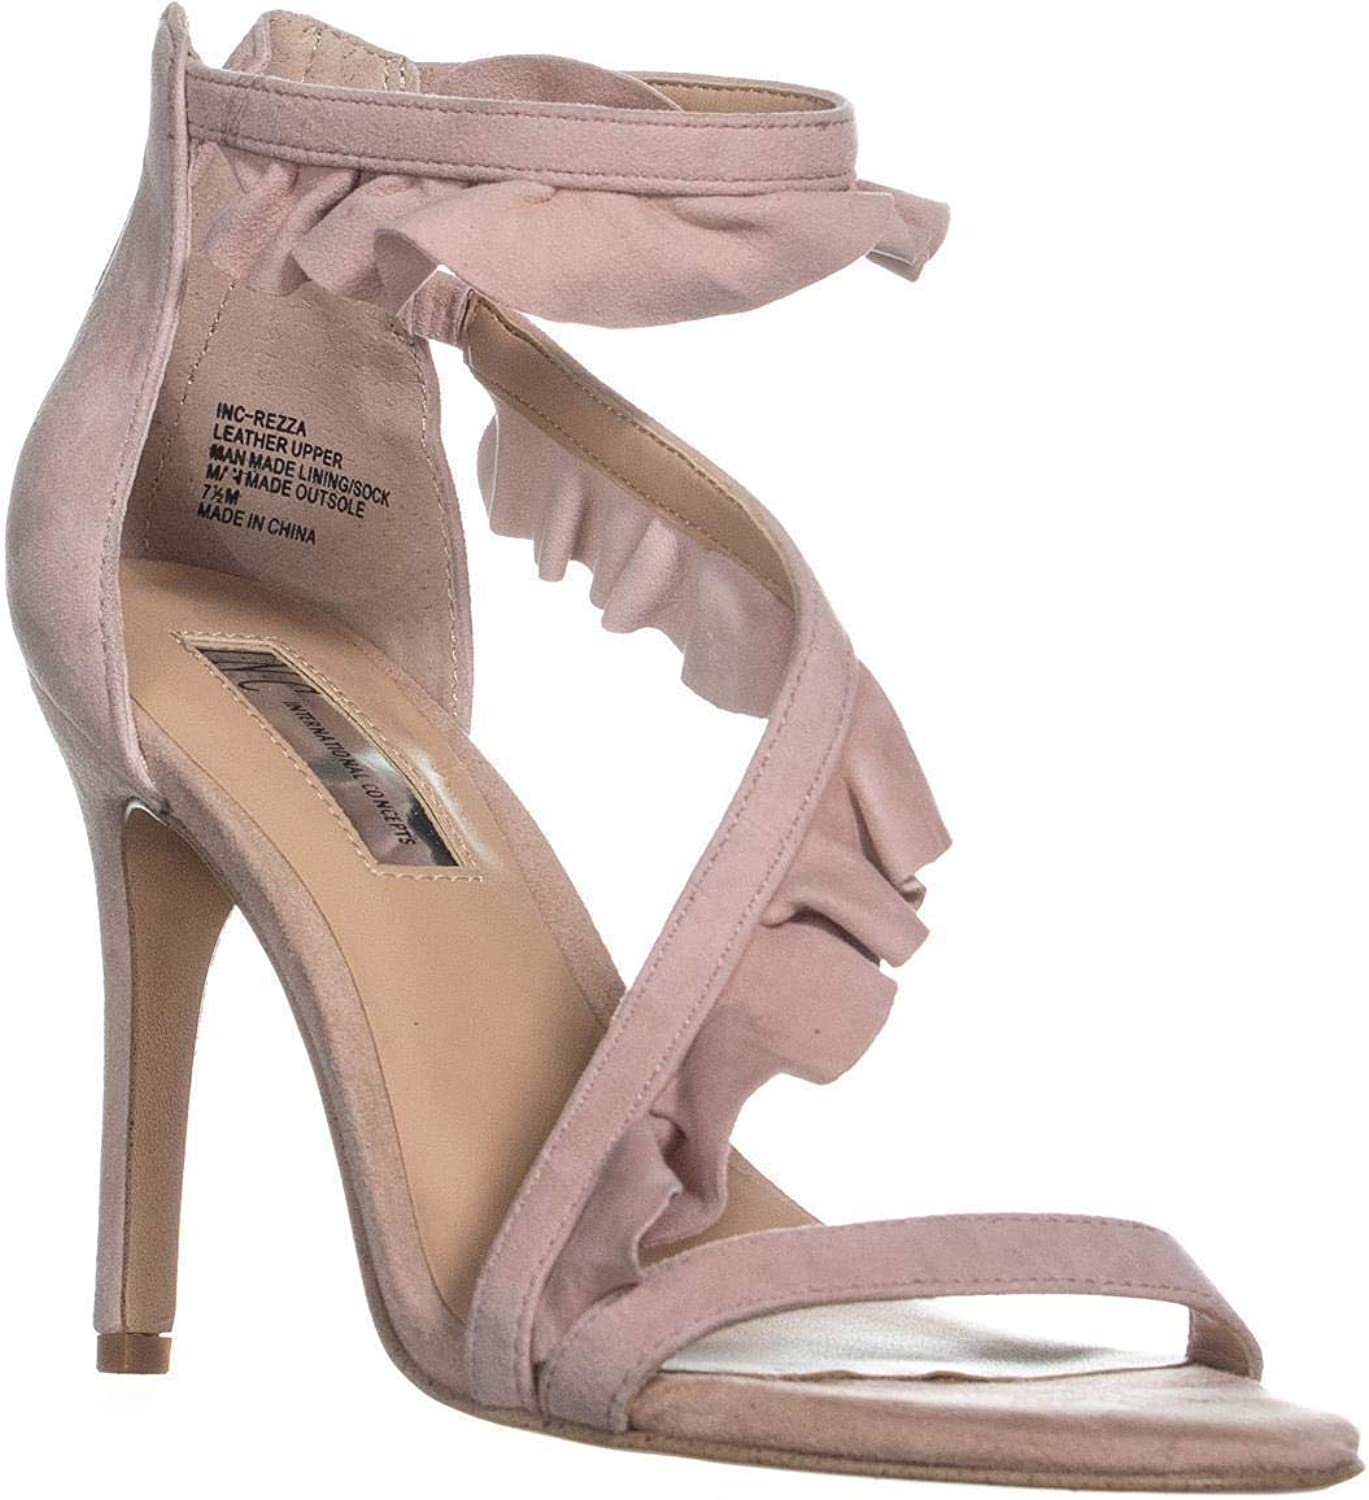 INC International Concepts Womens Rezzal Leather Open Toe Special Occasion an.